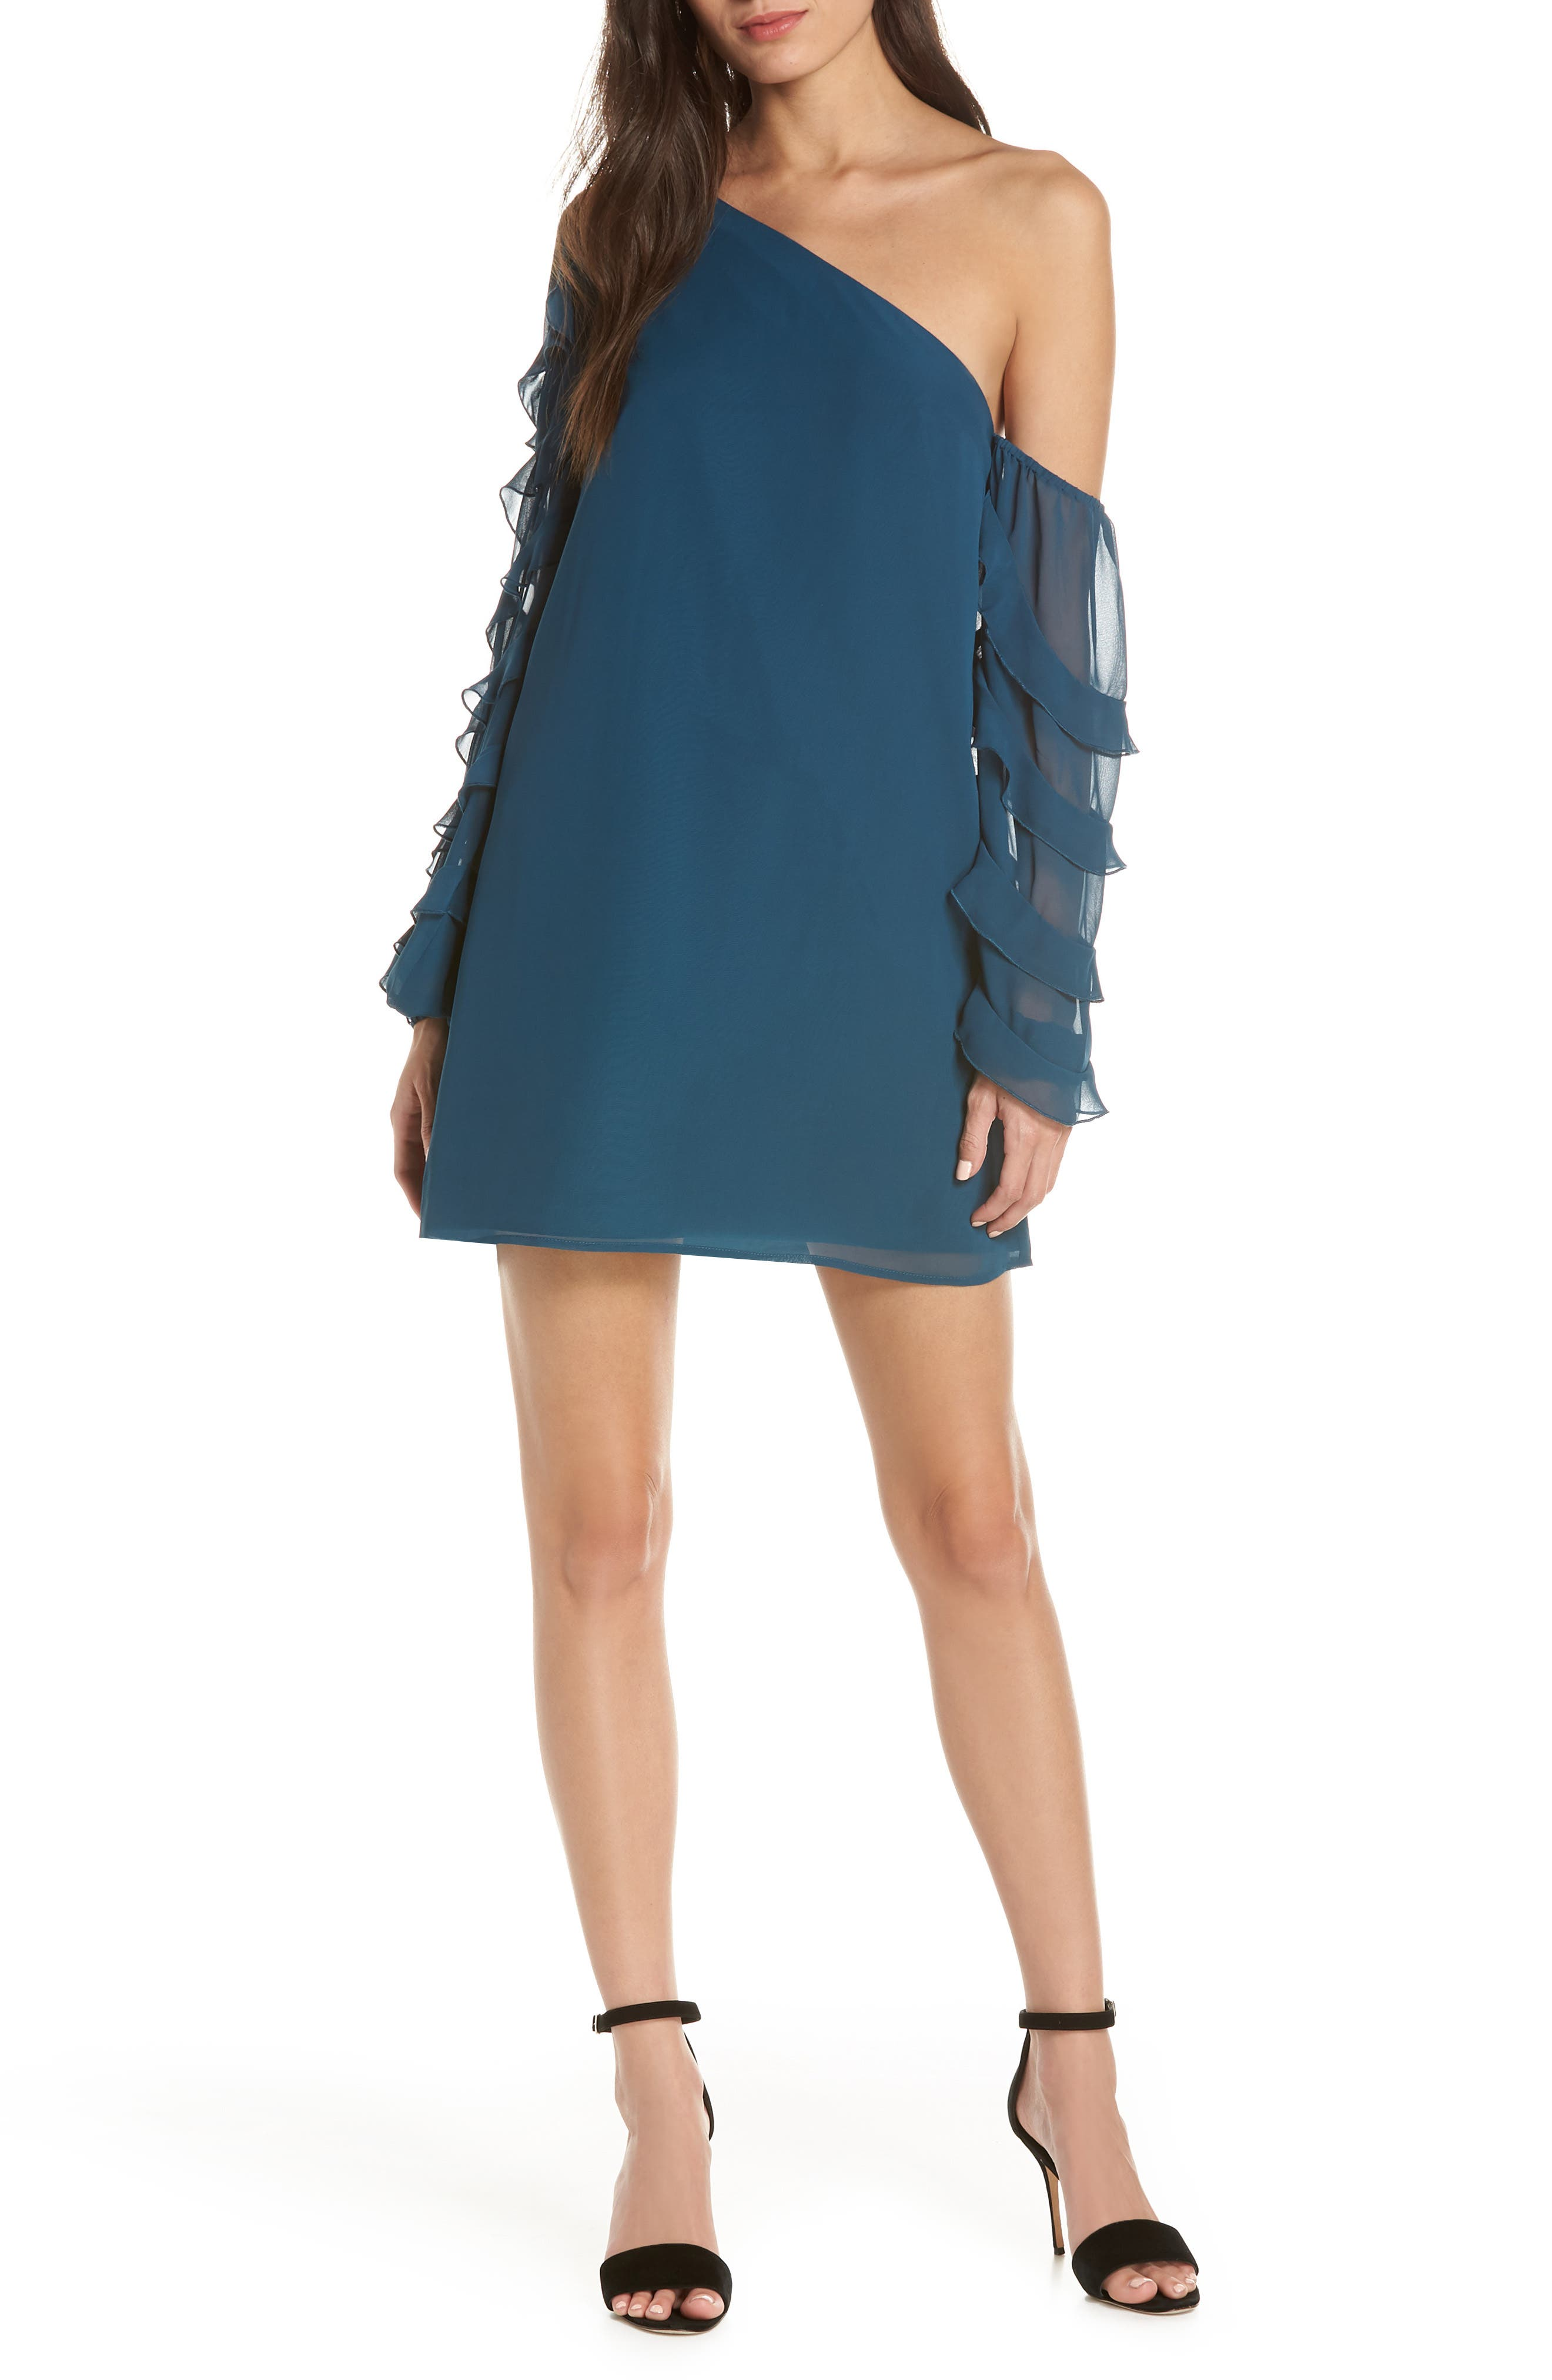 Love the Way I Look Tonight One-Shoulder Minidress,                             Main thumbnail 1, color,                             TEAL